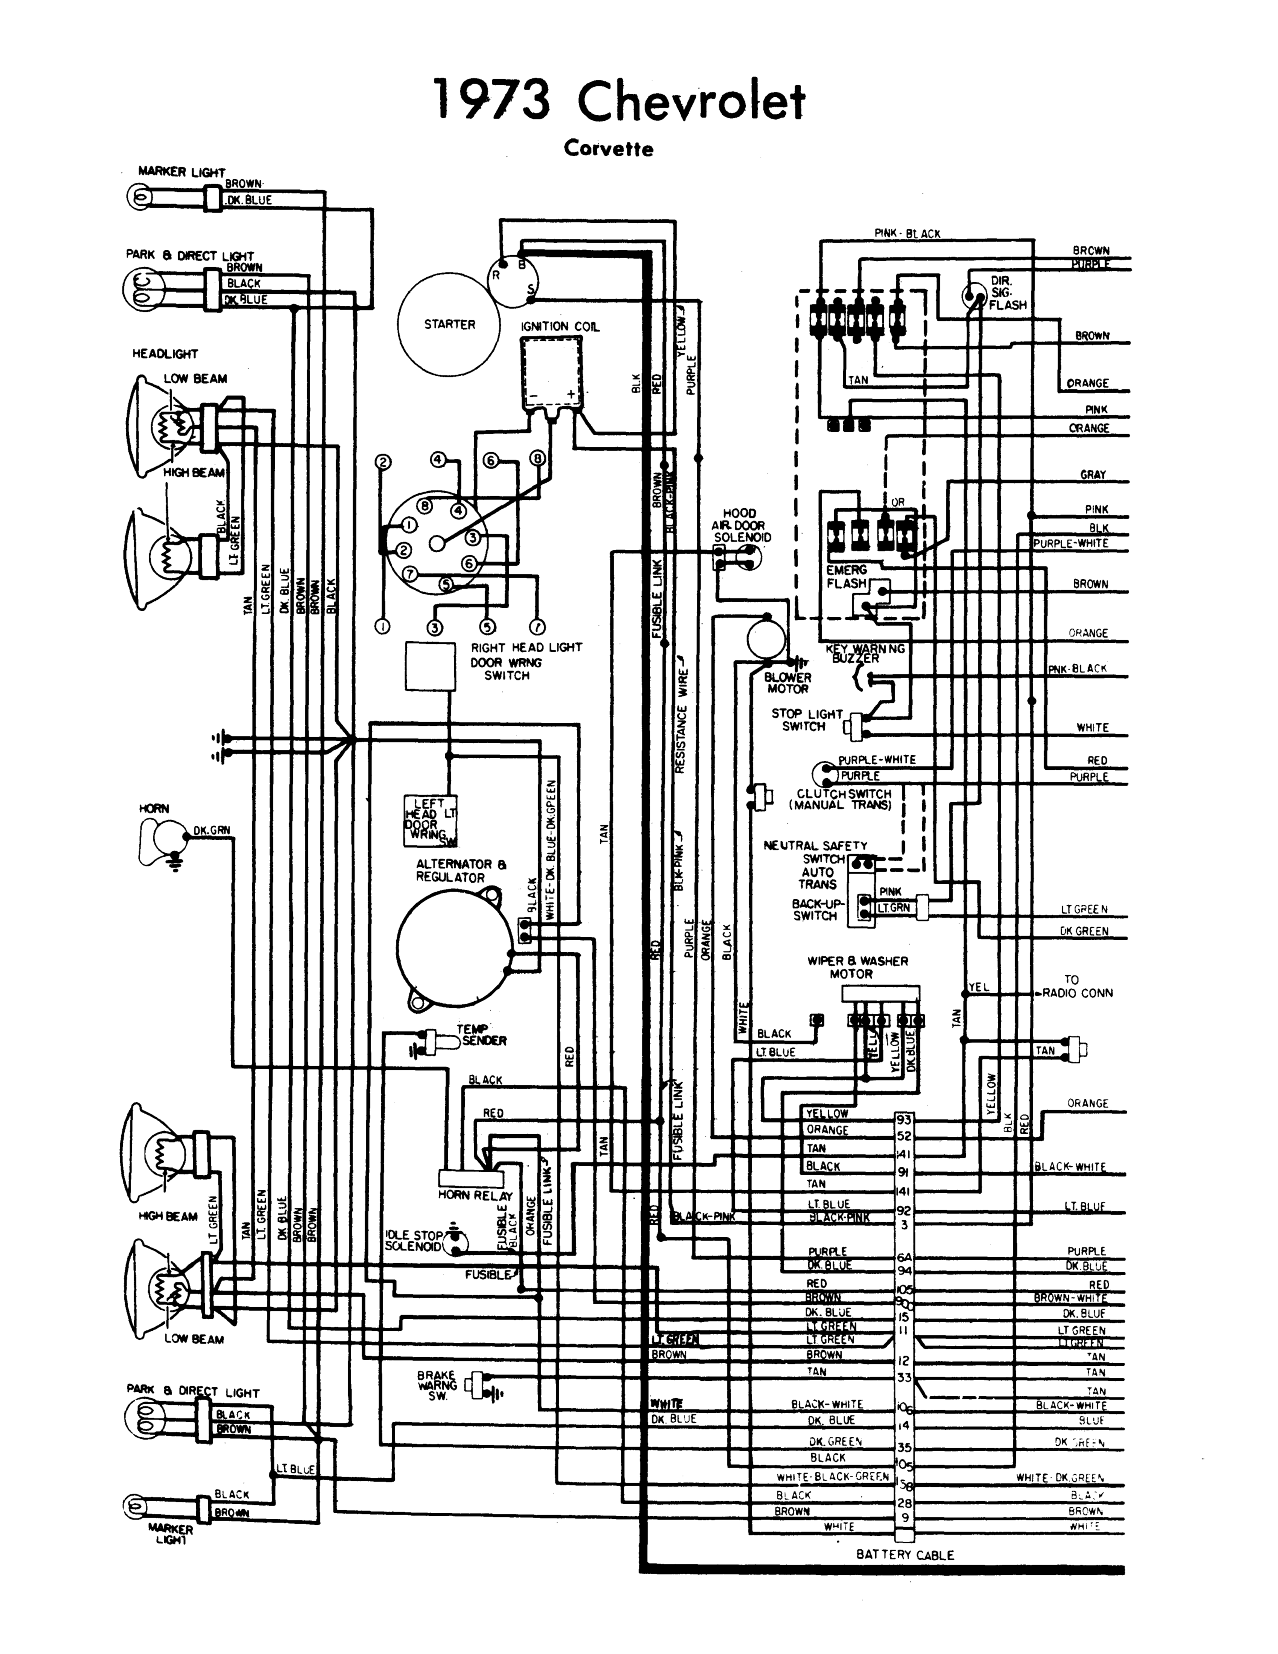 1973 Corvette Wiring Diagram Another Blog About Camaro Air Conditioning